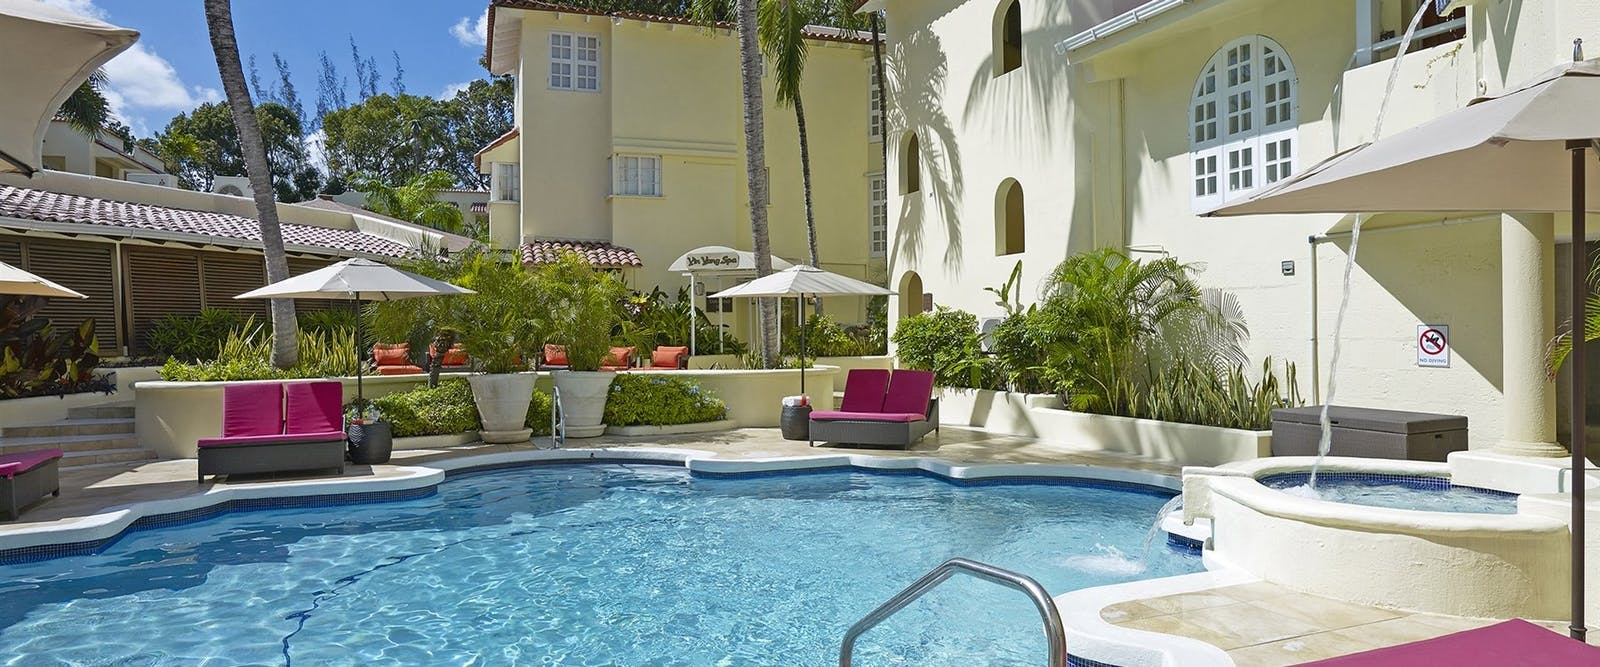 Spa Pool at Tamarind by Elegant Hotels, Barbados